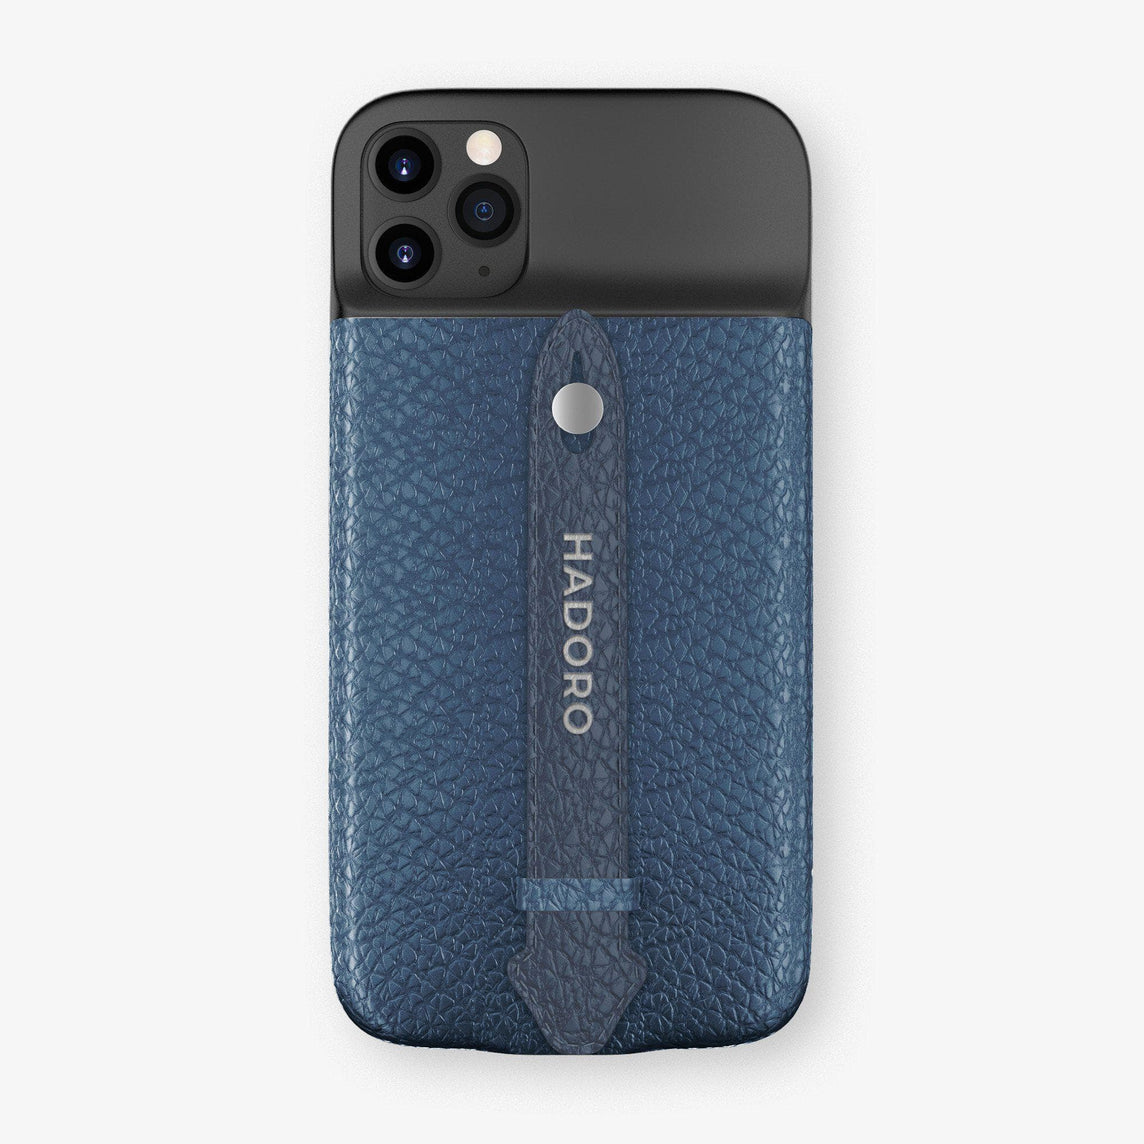 Calfskin Battery Finger Case for iPhone 11 Pro Max | Teal/Navy Blue - Stainless Steel without-personalization